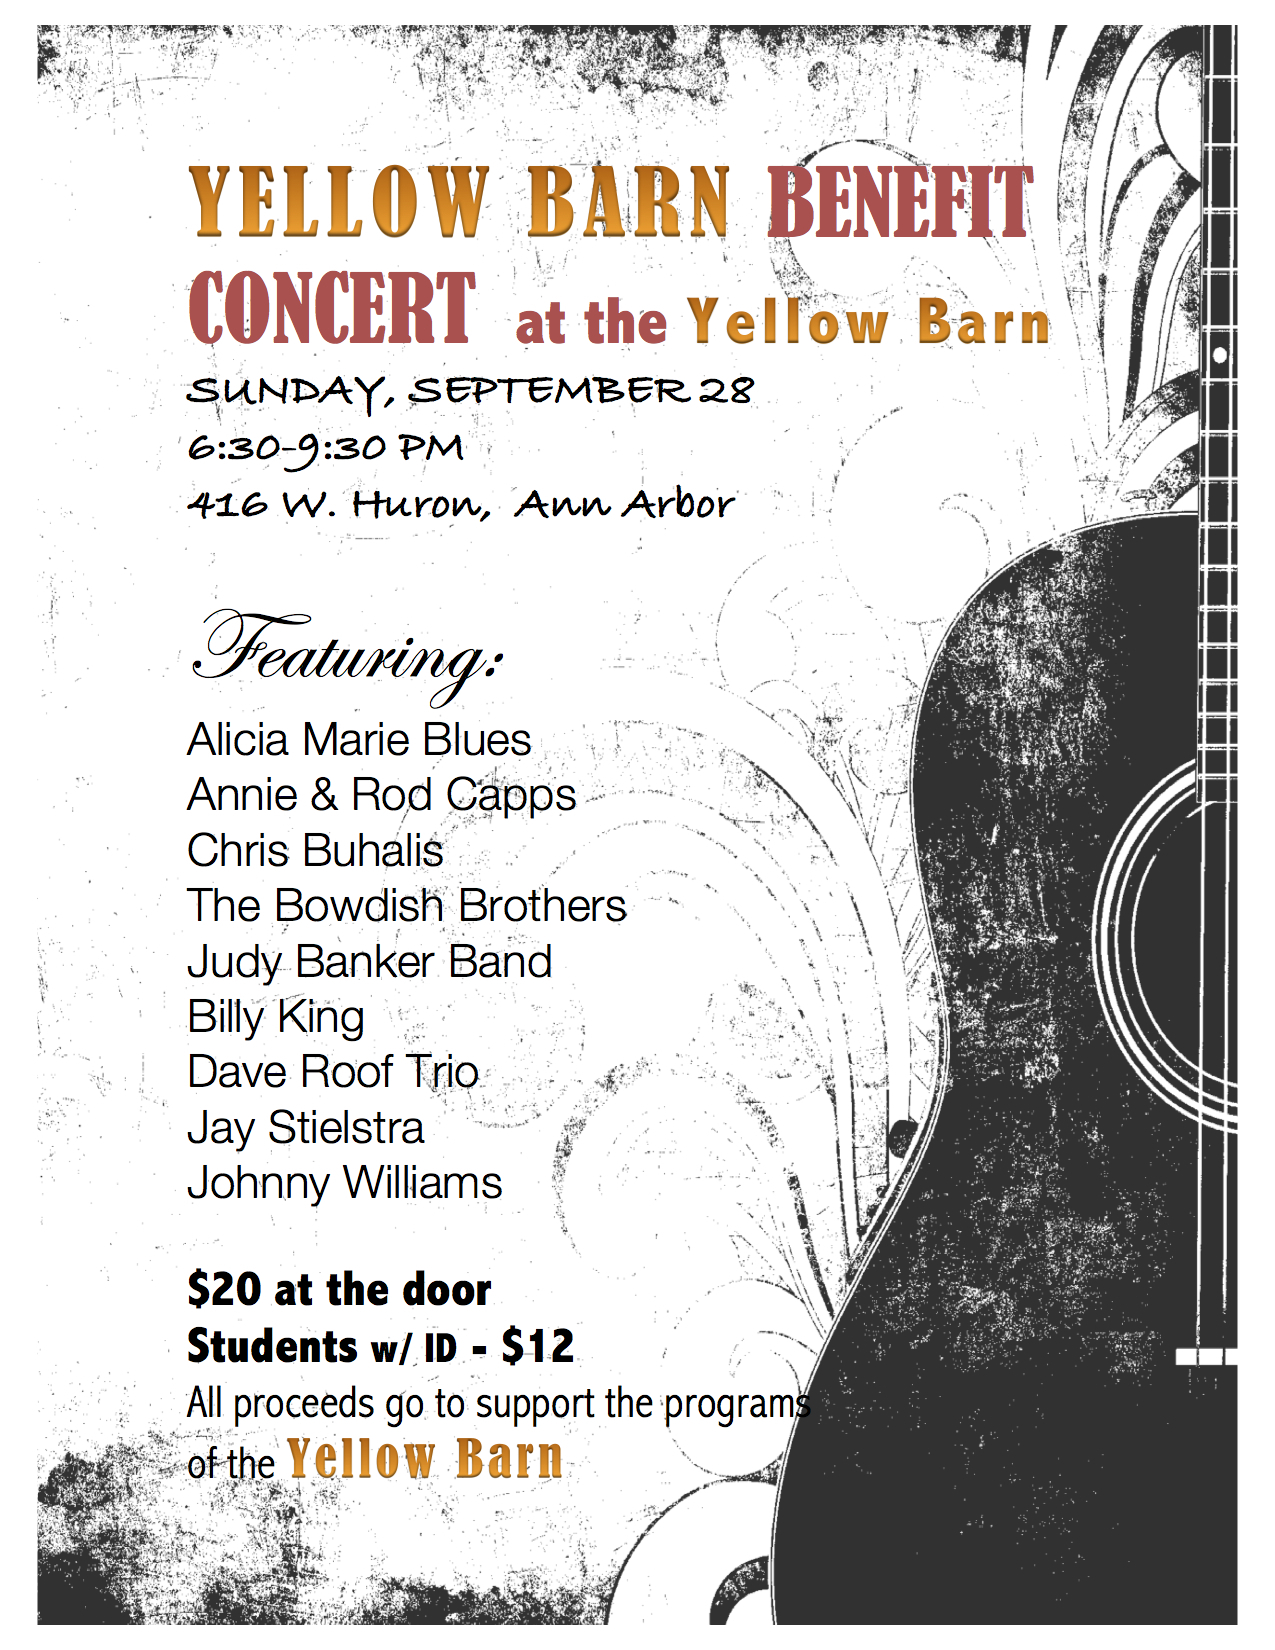 YELLOW-BARN-BENEFIT-CONCERT3-at-the-Yellow-Barn-copy-2